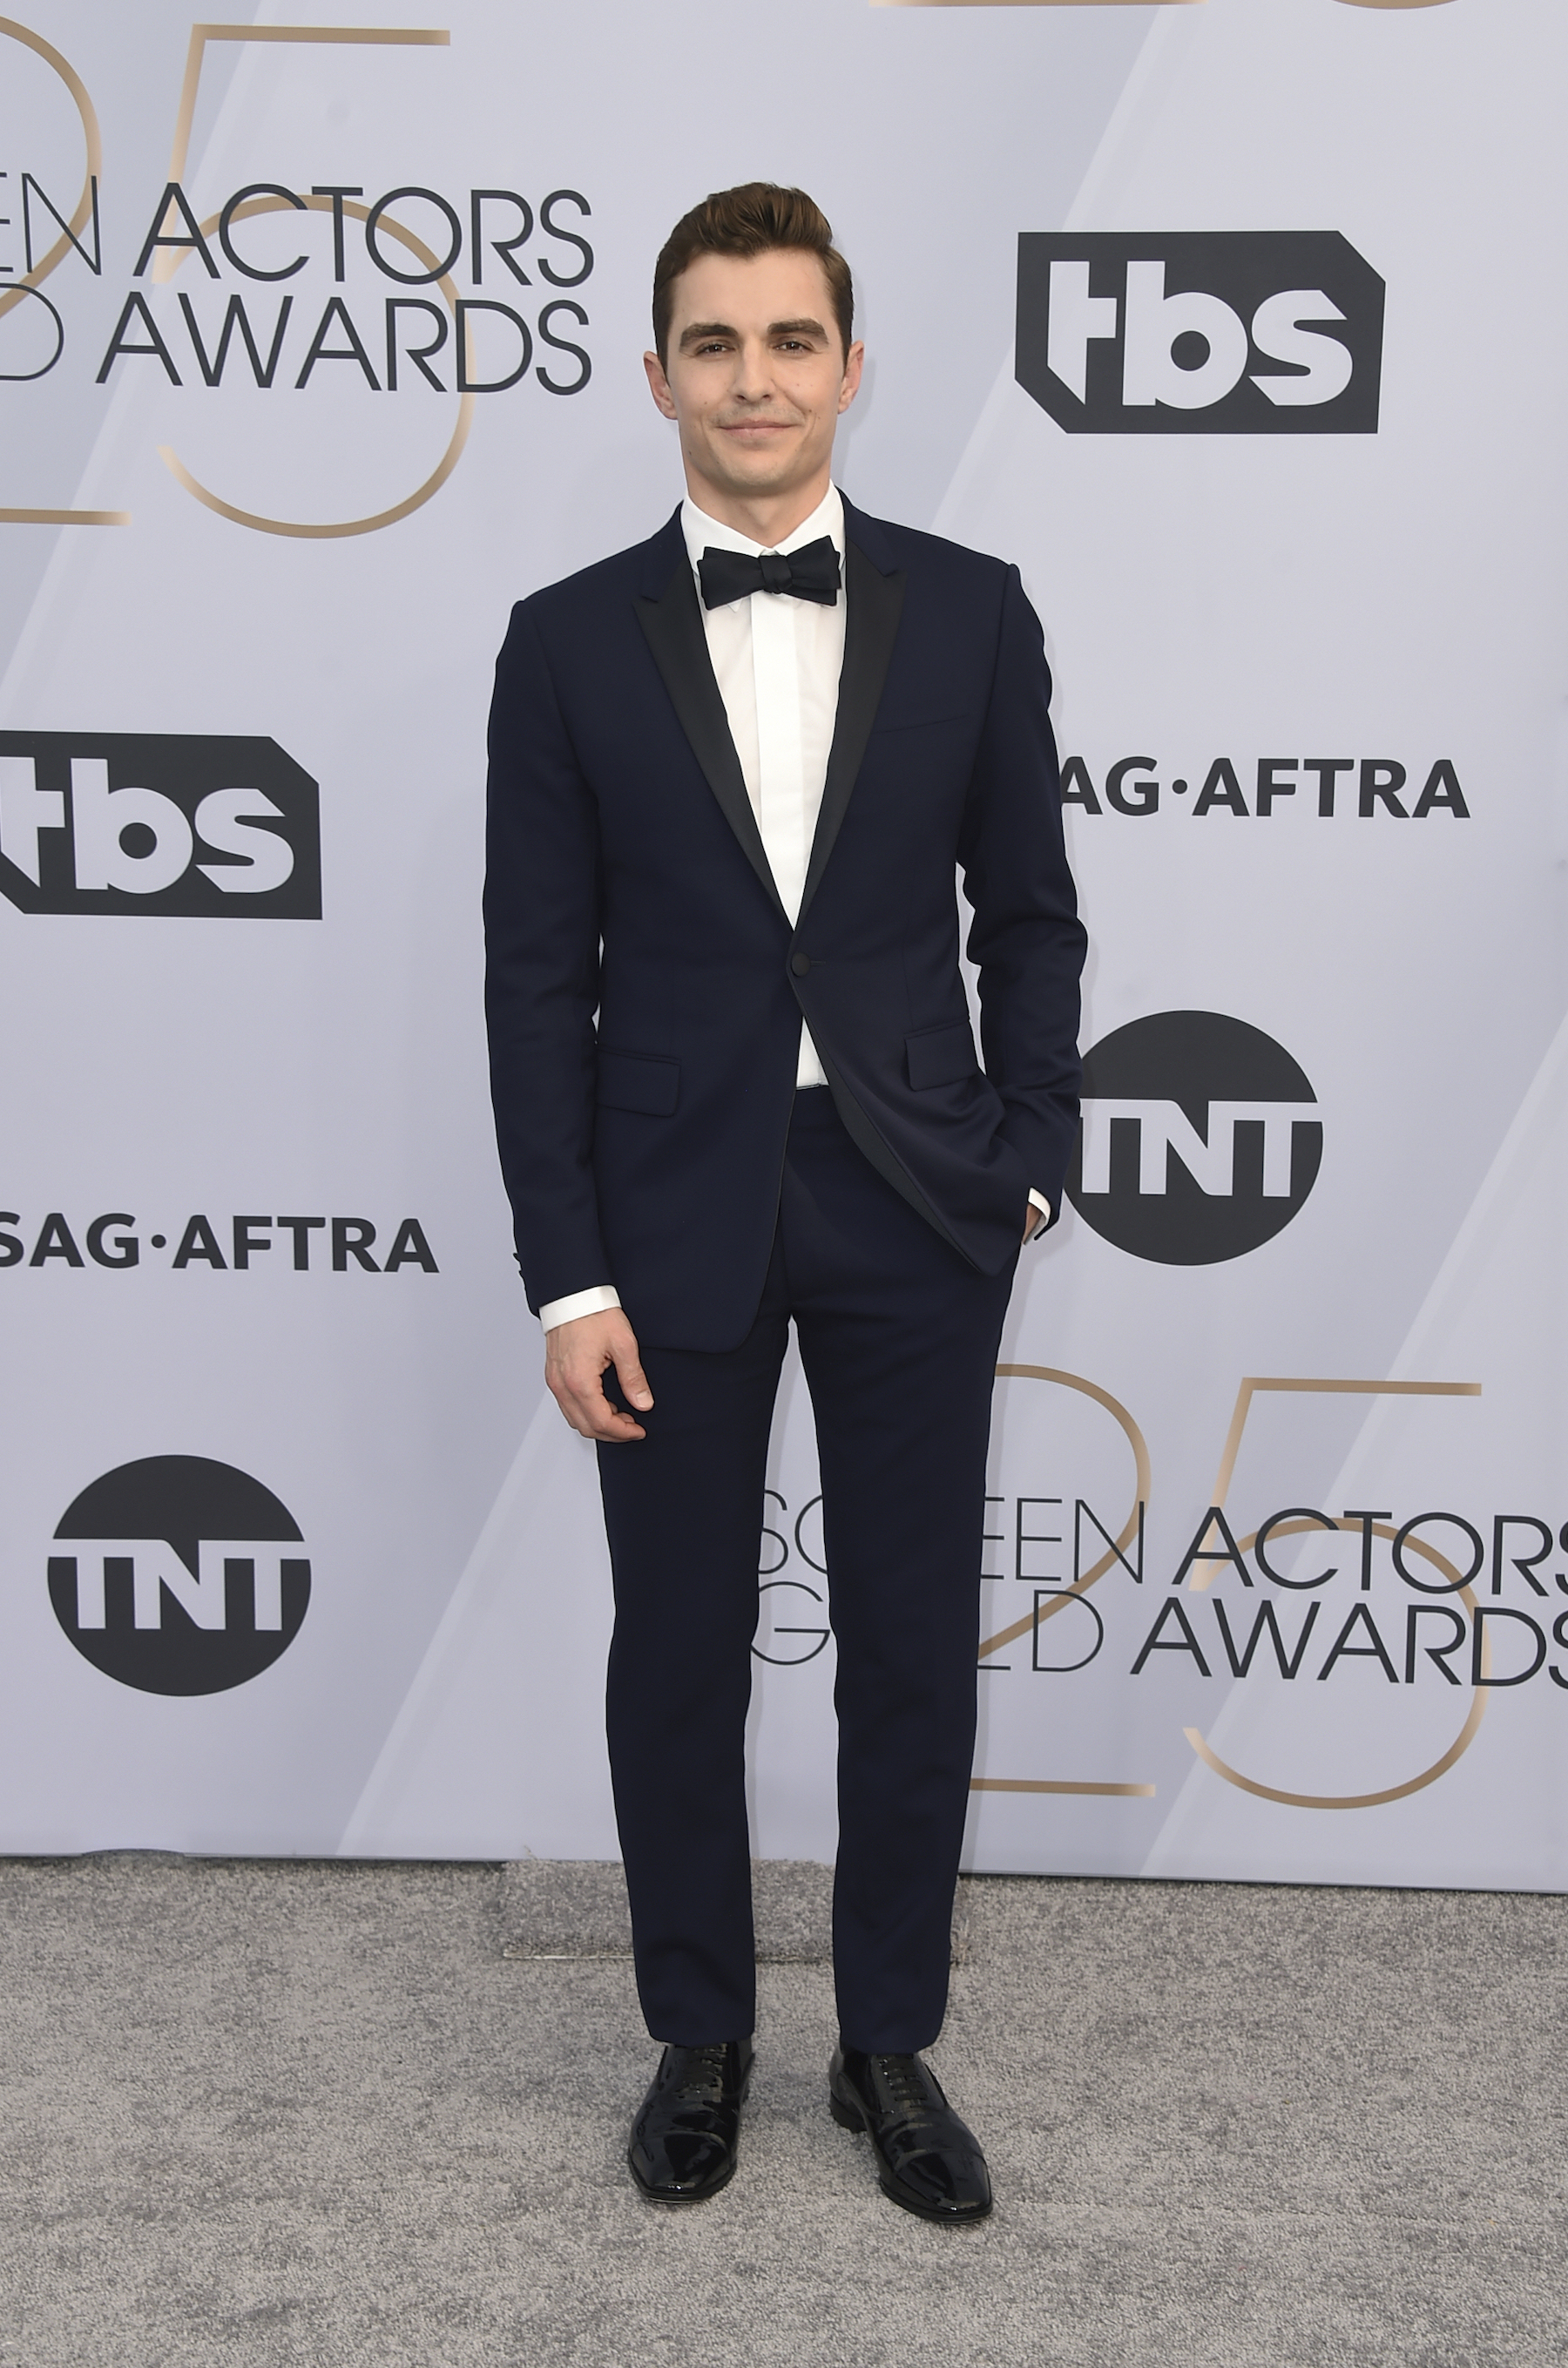 "<div class=""meta image-caption""><div class=""origin-logo origin-image ap""><span>AP</span></div><span class=""caption-text"">Dave Franco arrives at the 25th annual Screen Actors Guild Awards at the Shrine Auditorium & Expo Hall on Sunday, Jan. 27, 2019, in Los Angeles. (Jordan Strauss/Invision/AP)</span></div>"